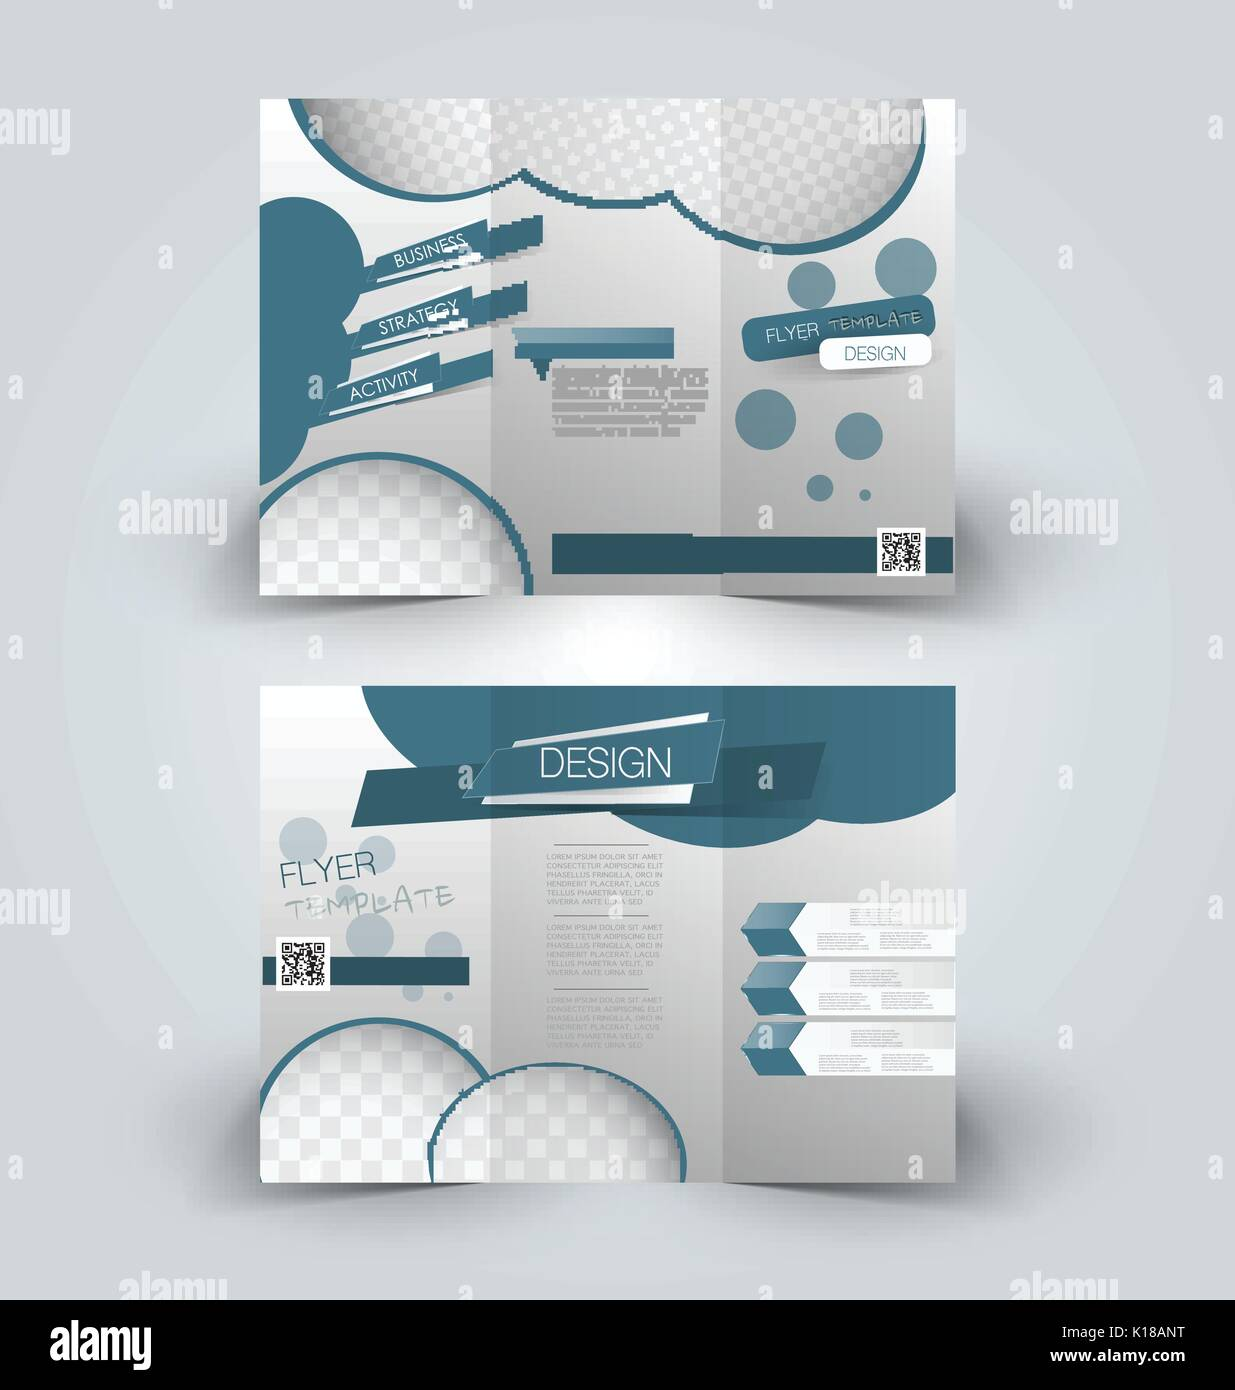 Trifold business brochure leaflet template for business education trifold business brochure leaflet template for business education presentation advertisement blue color wajeb Choice Image